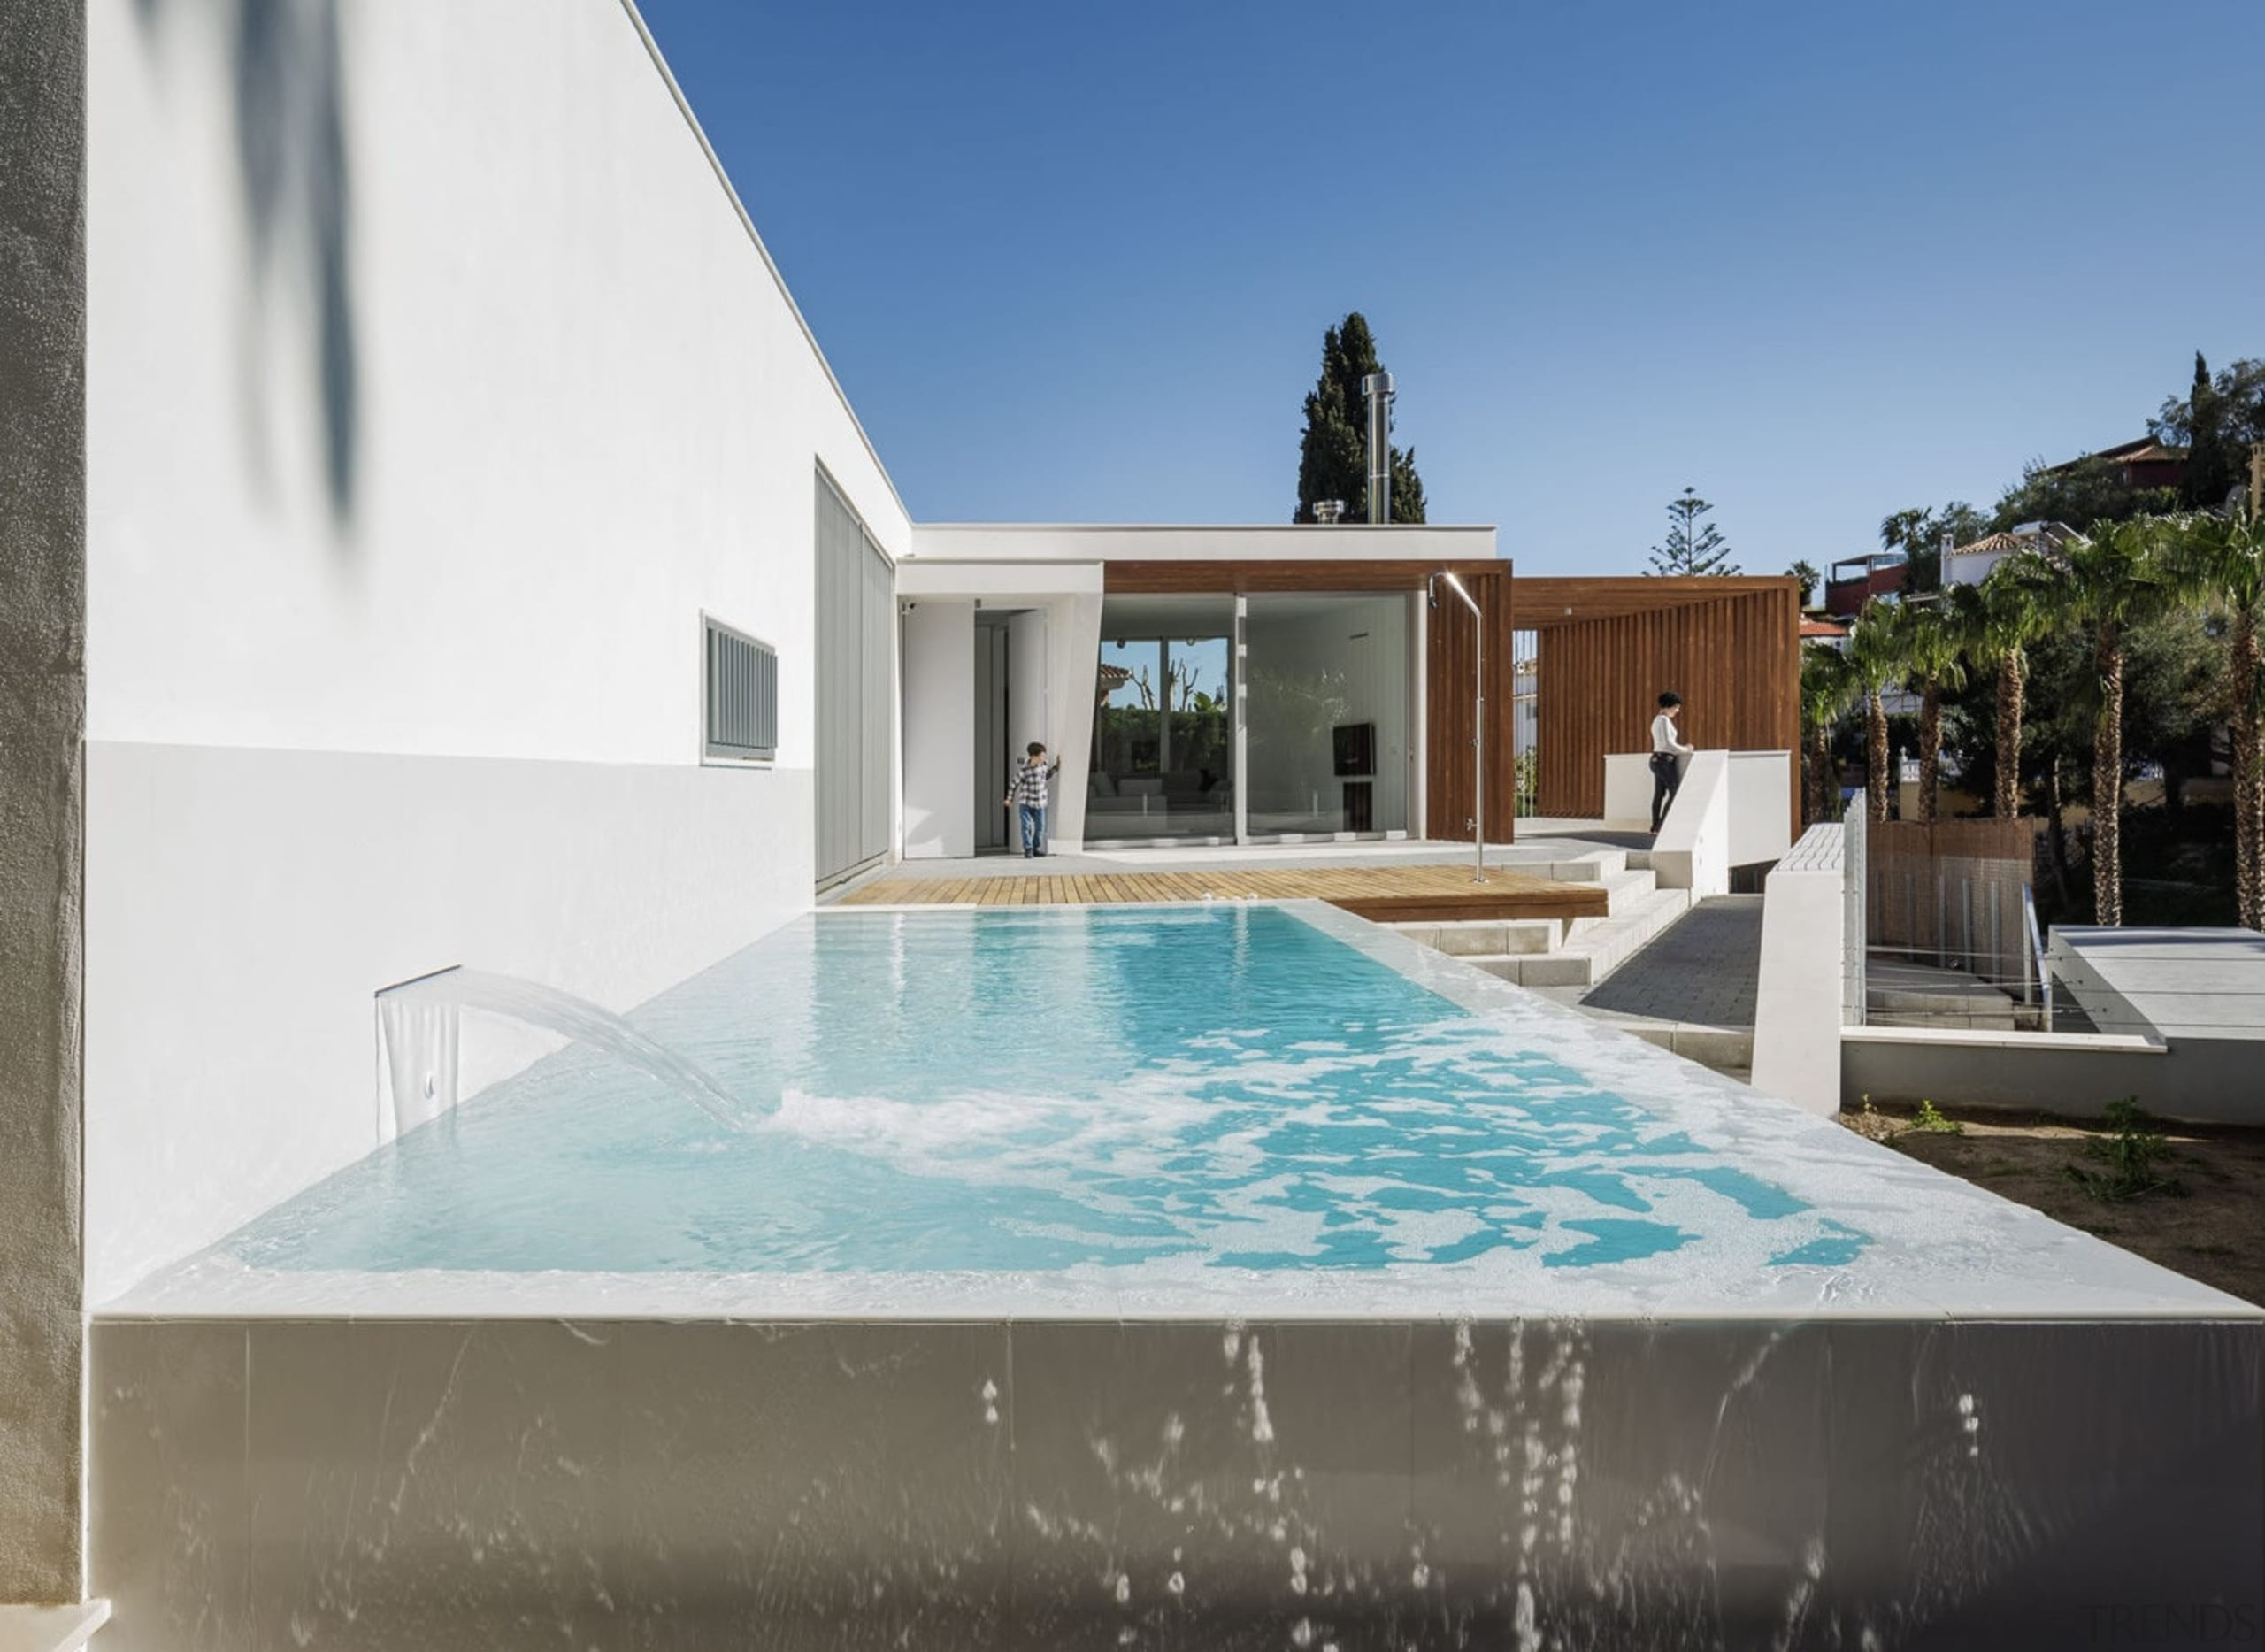 The pool provides a splash of colour - architecture, estate, home, house, property, real estate, swimming pool, villa, water, gray, white